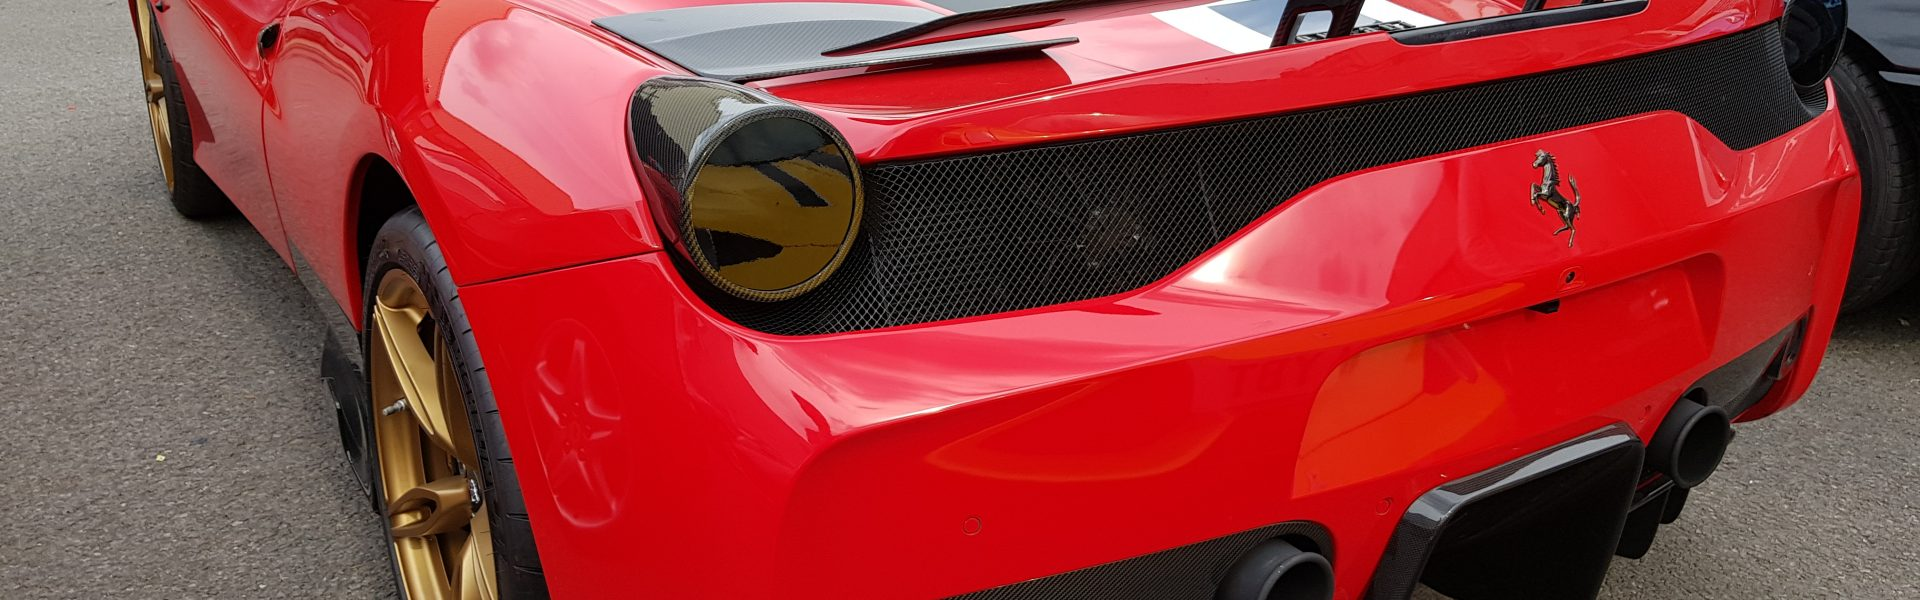 Ferrari 458 Speciale – Full Inconel exhaust, ECU tune and carbon fibre accessories